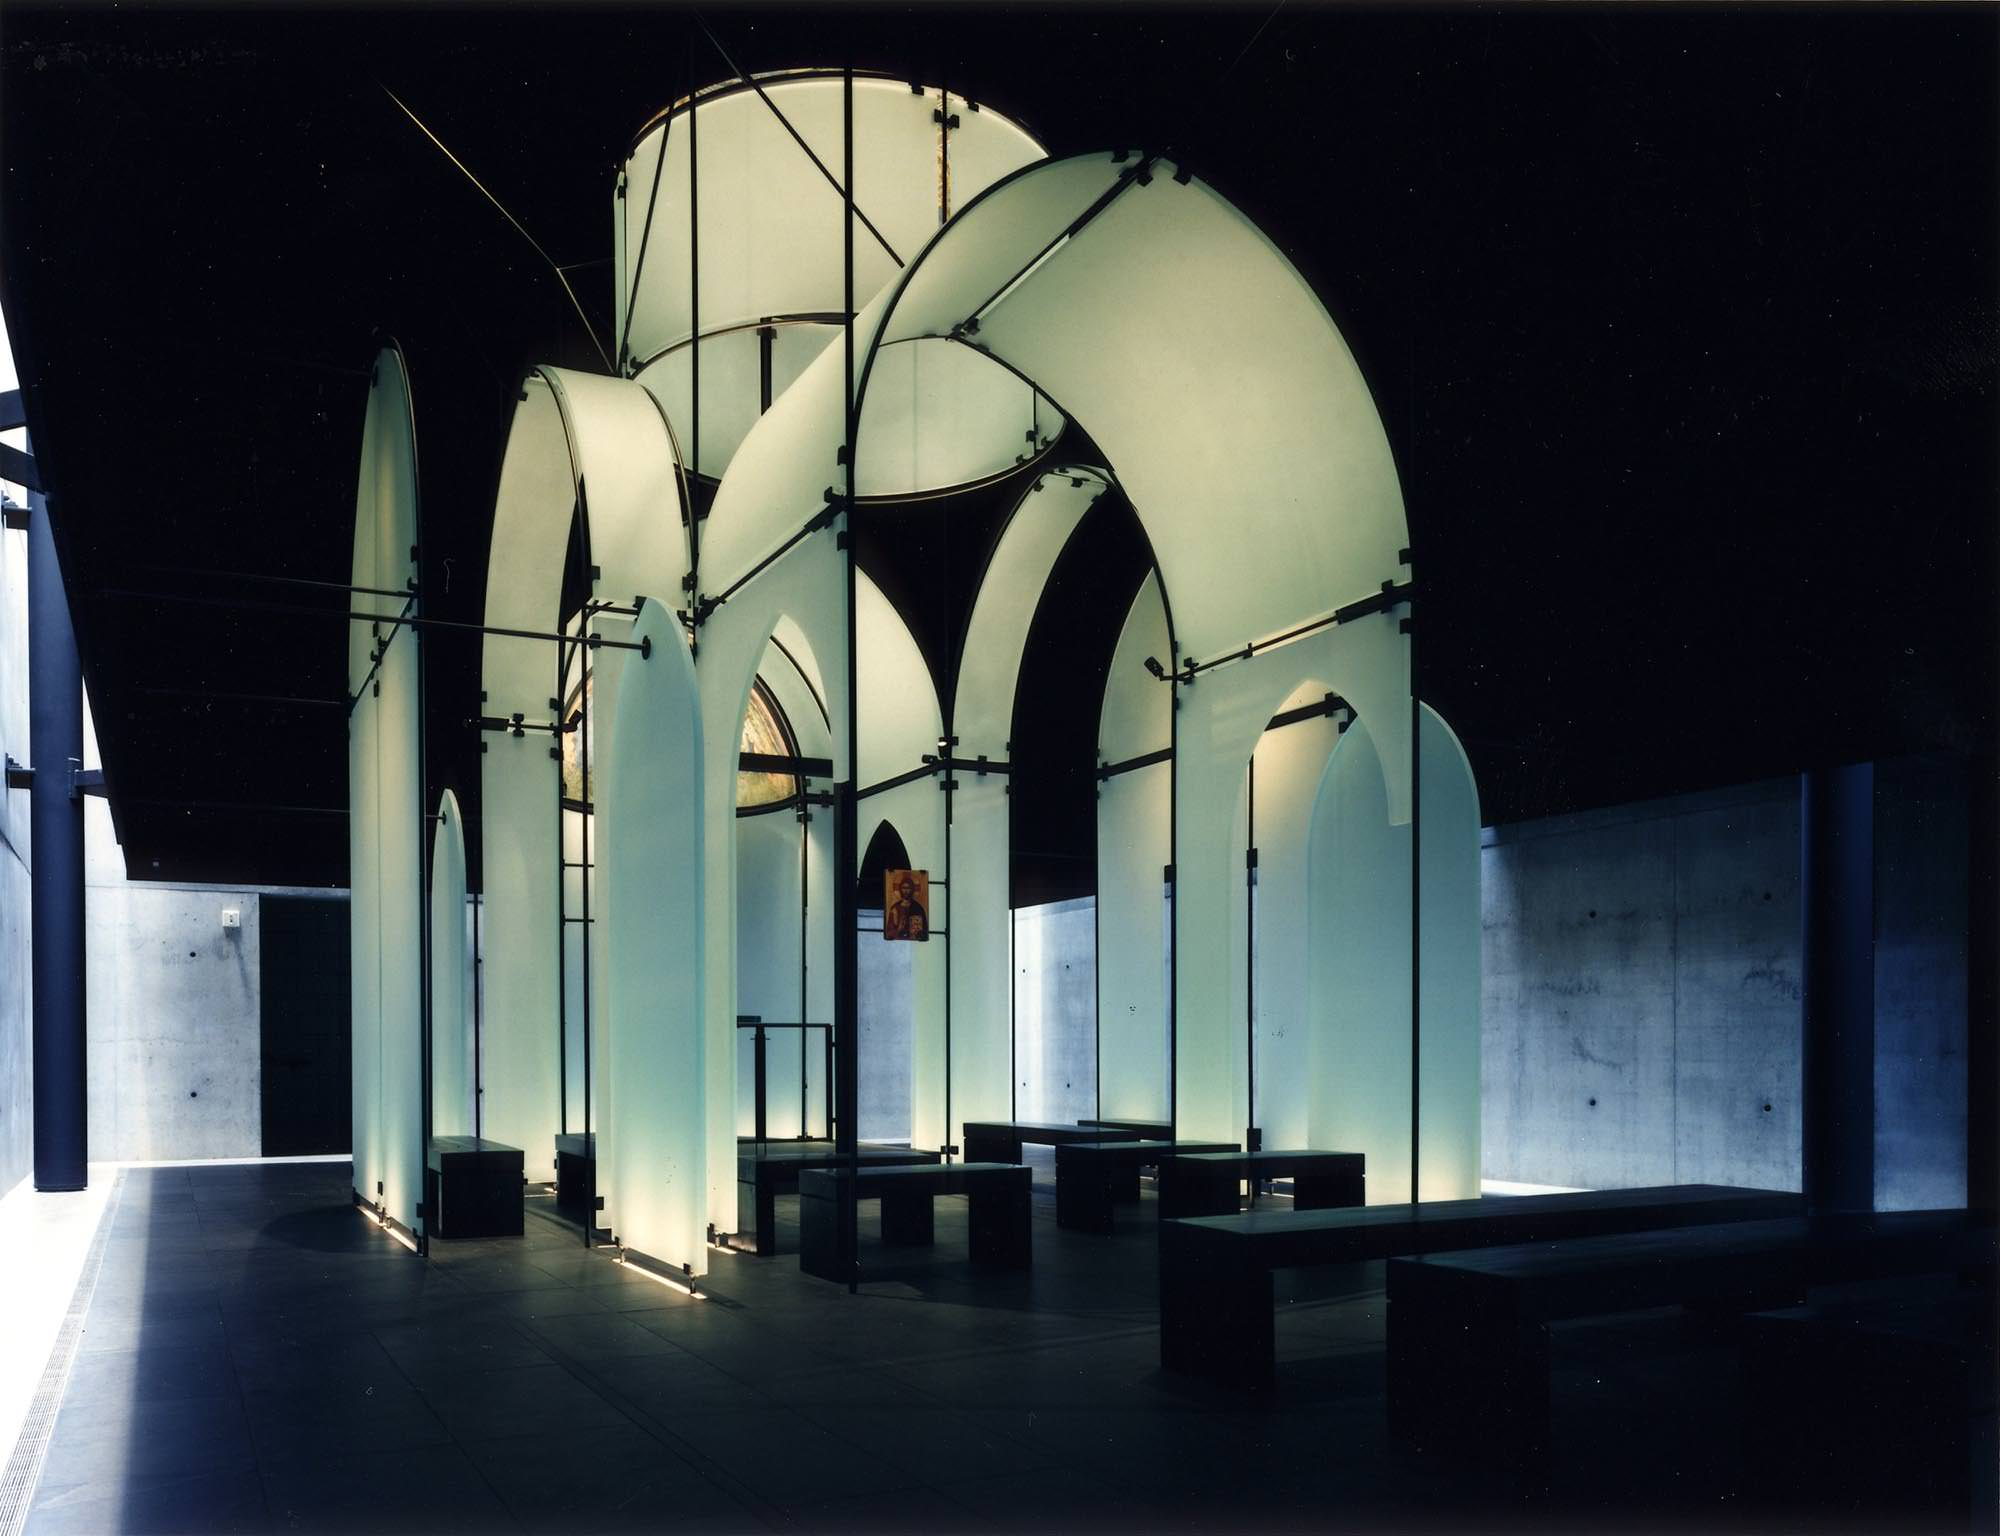 Francois de Menil, Byzantine Fresco Chapel, Houston, Texas. Photo courtesy of and copyright Paul Warchol Photography.